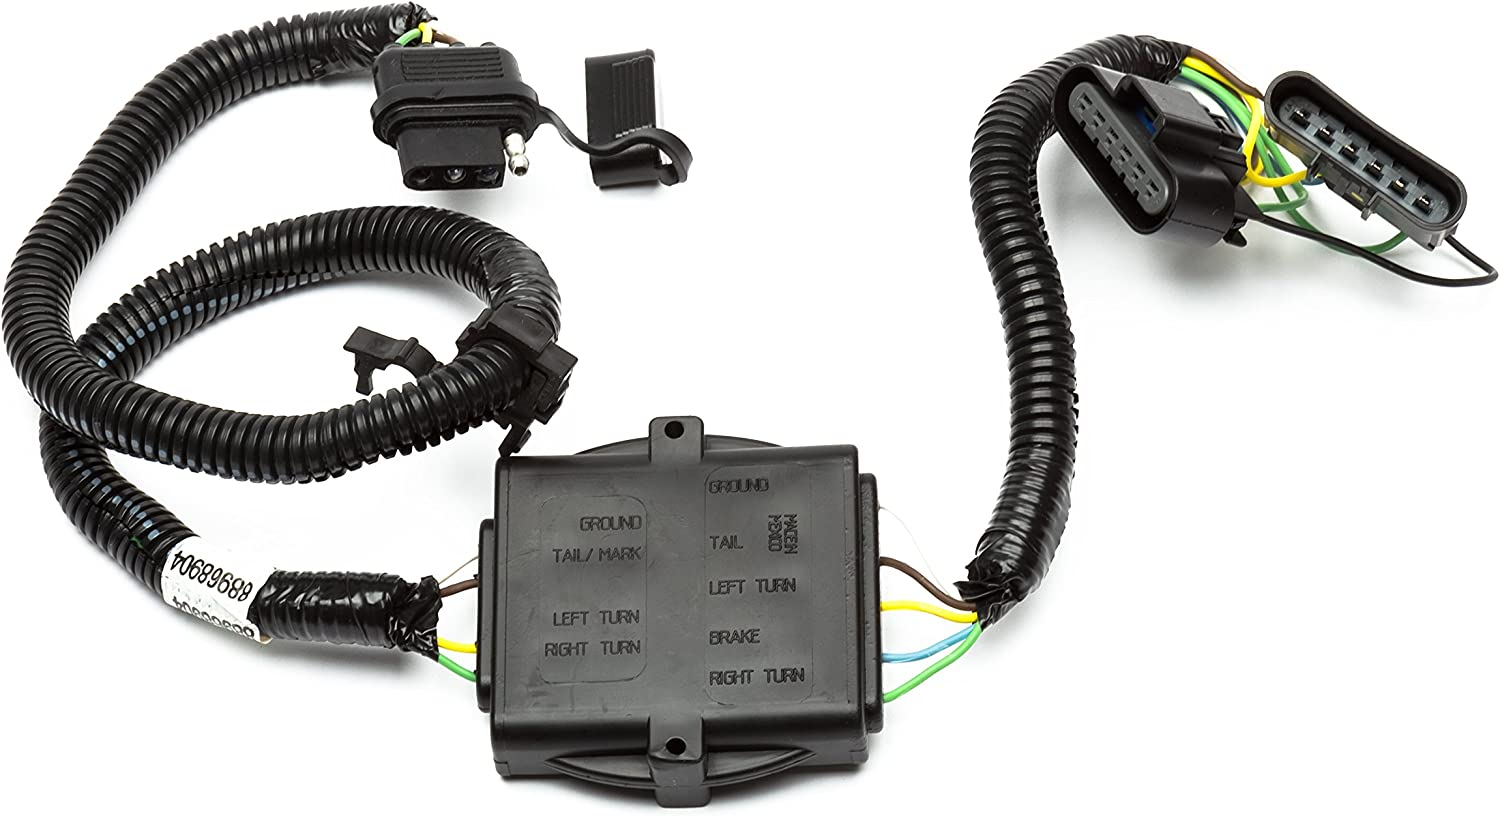 Amazon.com: General Motors GM Accessories 17801656 Trailer Wiring Harness:  Automotive